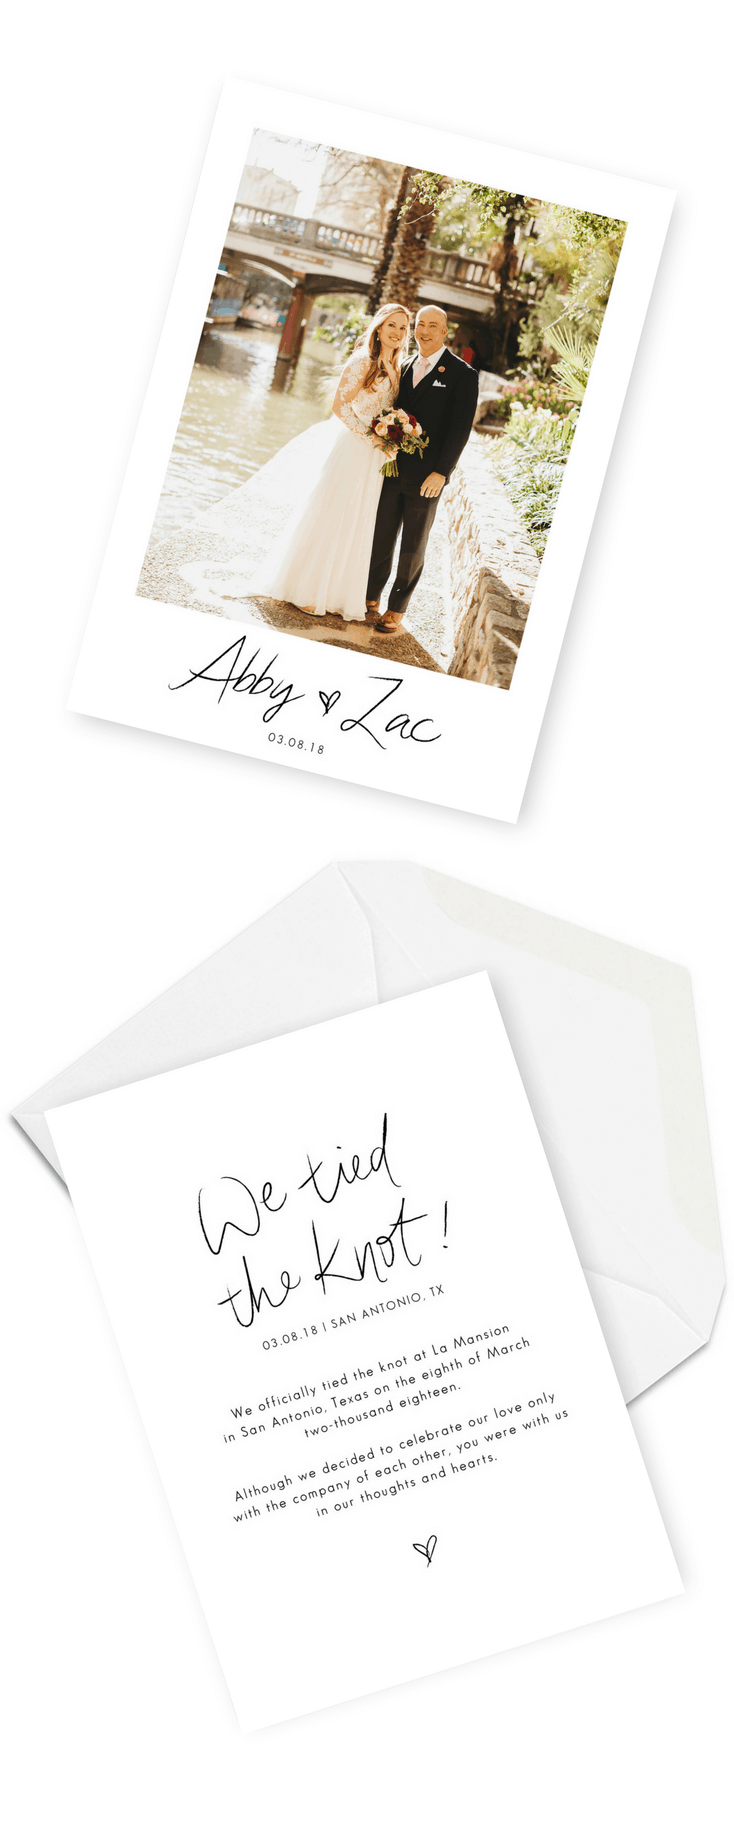 Wedding Announcement Cards and Elopement Invitation Ideas We Eloped We Tied The Knot